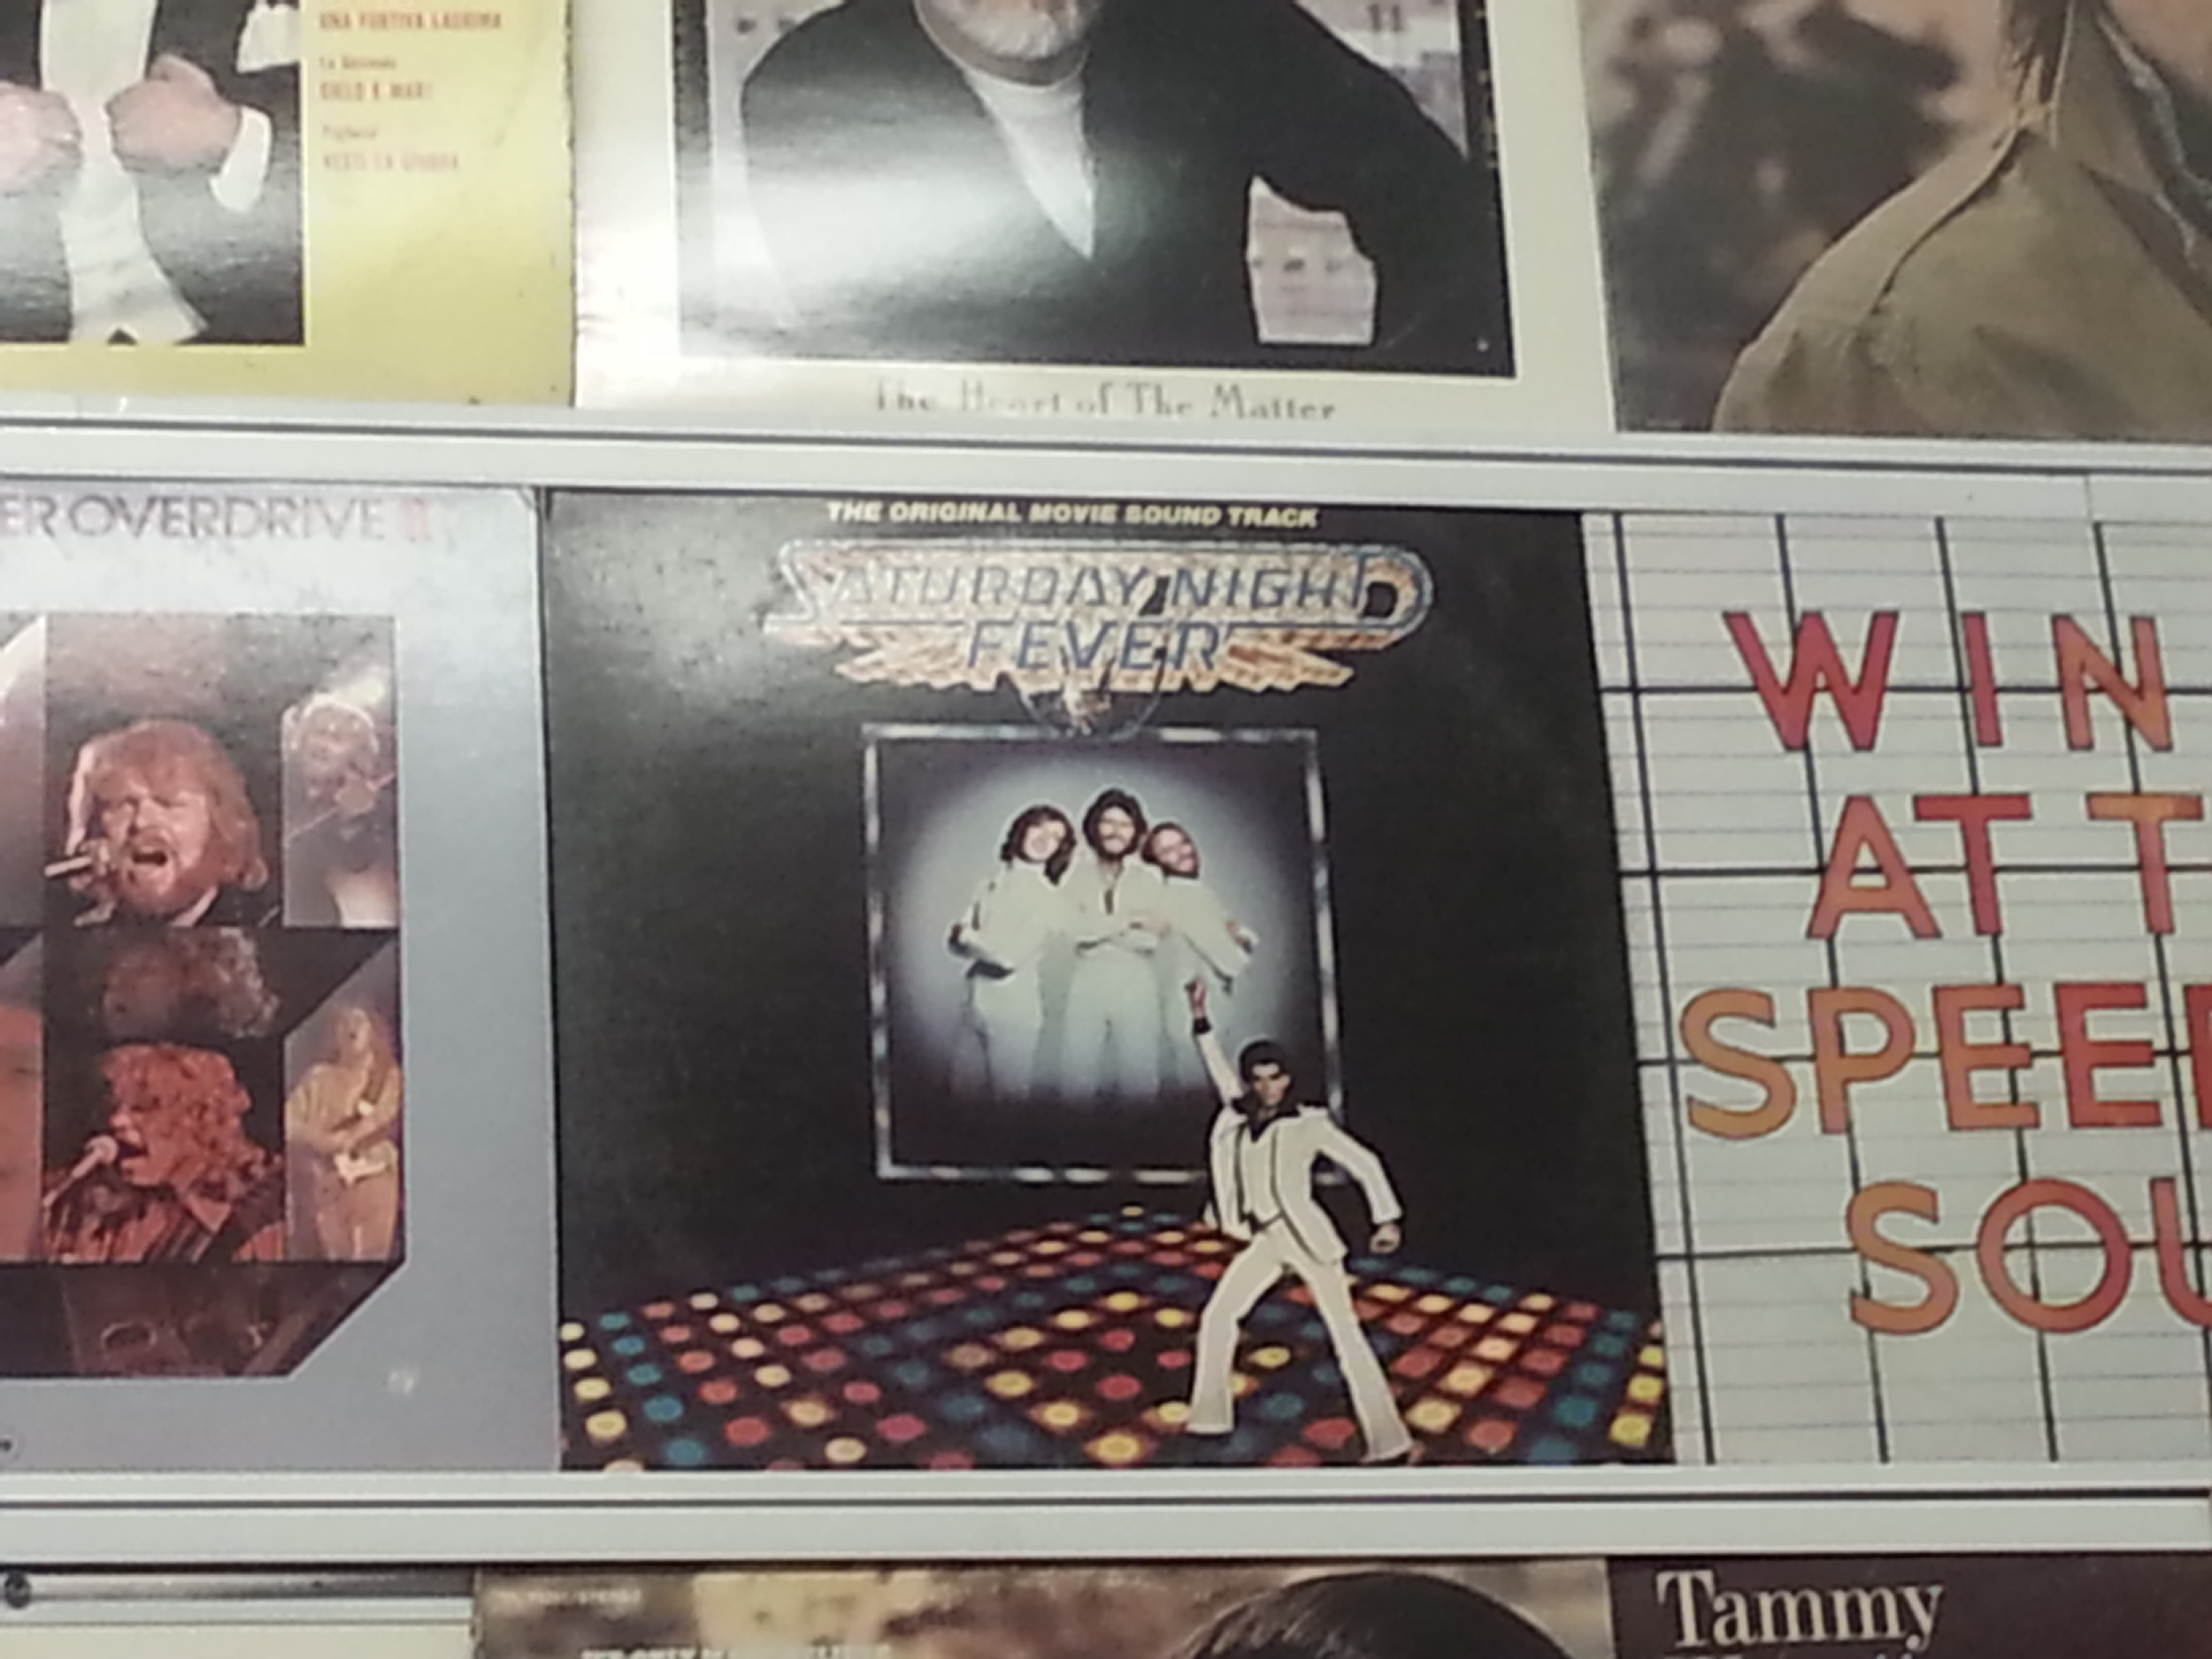 Of course we have the Saturday Night Fever soundtrack! Think you can find it among our thousands of records?